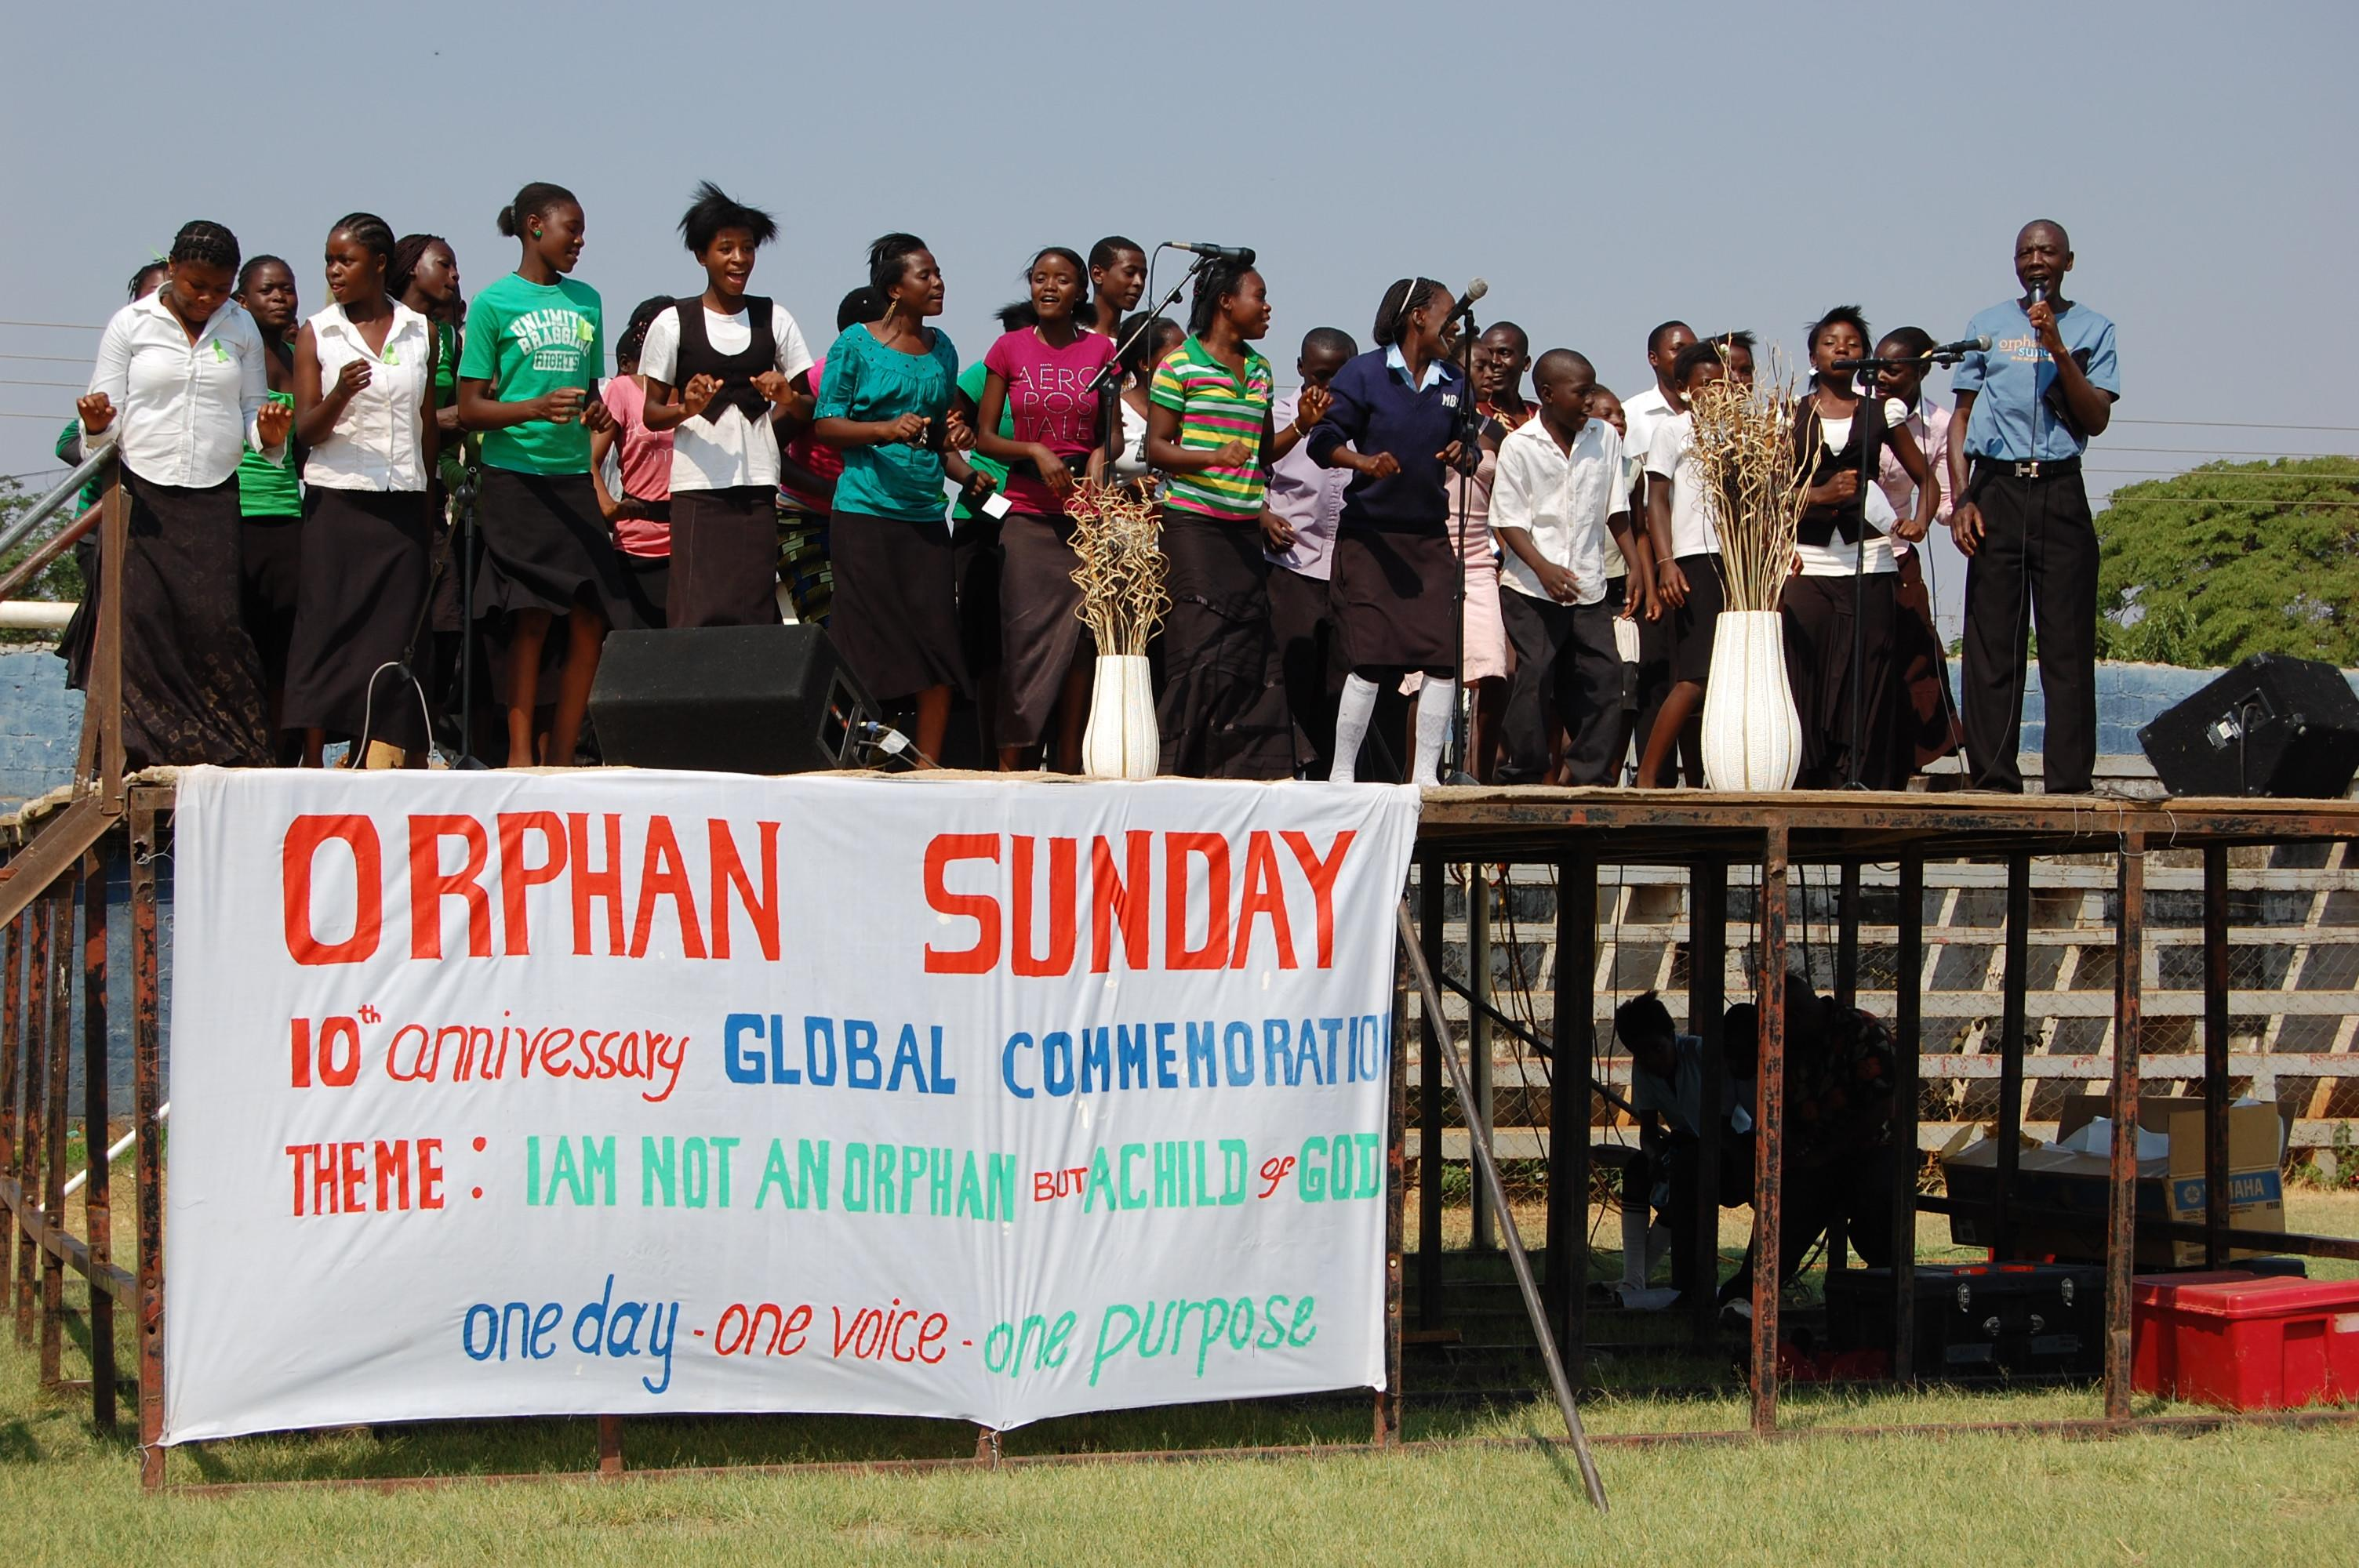 """In this 2012 photo provided by the Christian Alliance for Orphans, a pastor, right, speaks on stage accompanied by orphaned children from the Lusaka region to celebrate """"Orphan Sunday"""" in Lusaka, Zambia. Organizers of Orphan Sunday, which started on a large scale in 2009, say 2013's event will be bigger than ever, unfolding in every state and many foreign countries. Yet it comes at a time with the number of international adoptions dwindling and the adoption movement encountering criticisms so forceful that some of its own leaders are paying heed. (AP Photo/Christian Alliance for Orphans)"""